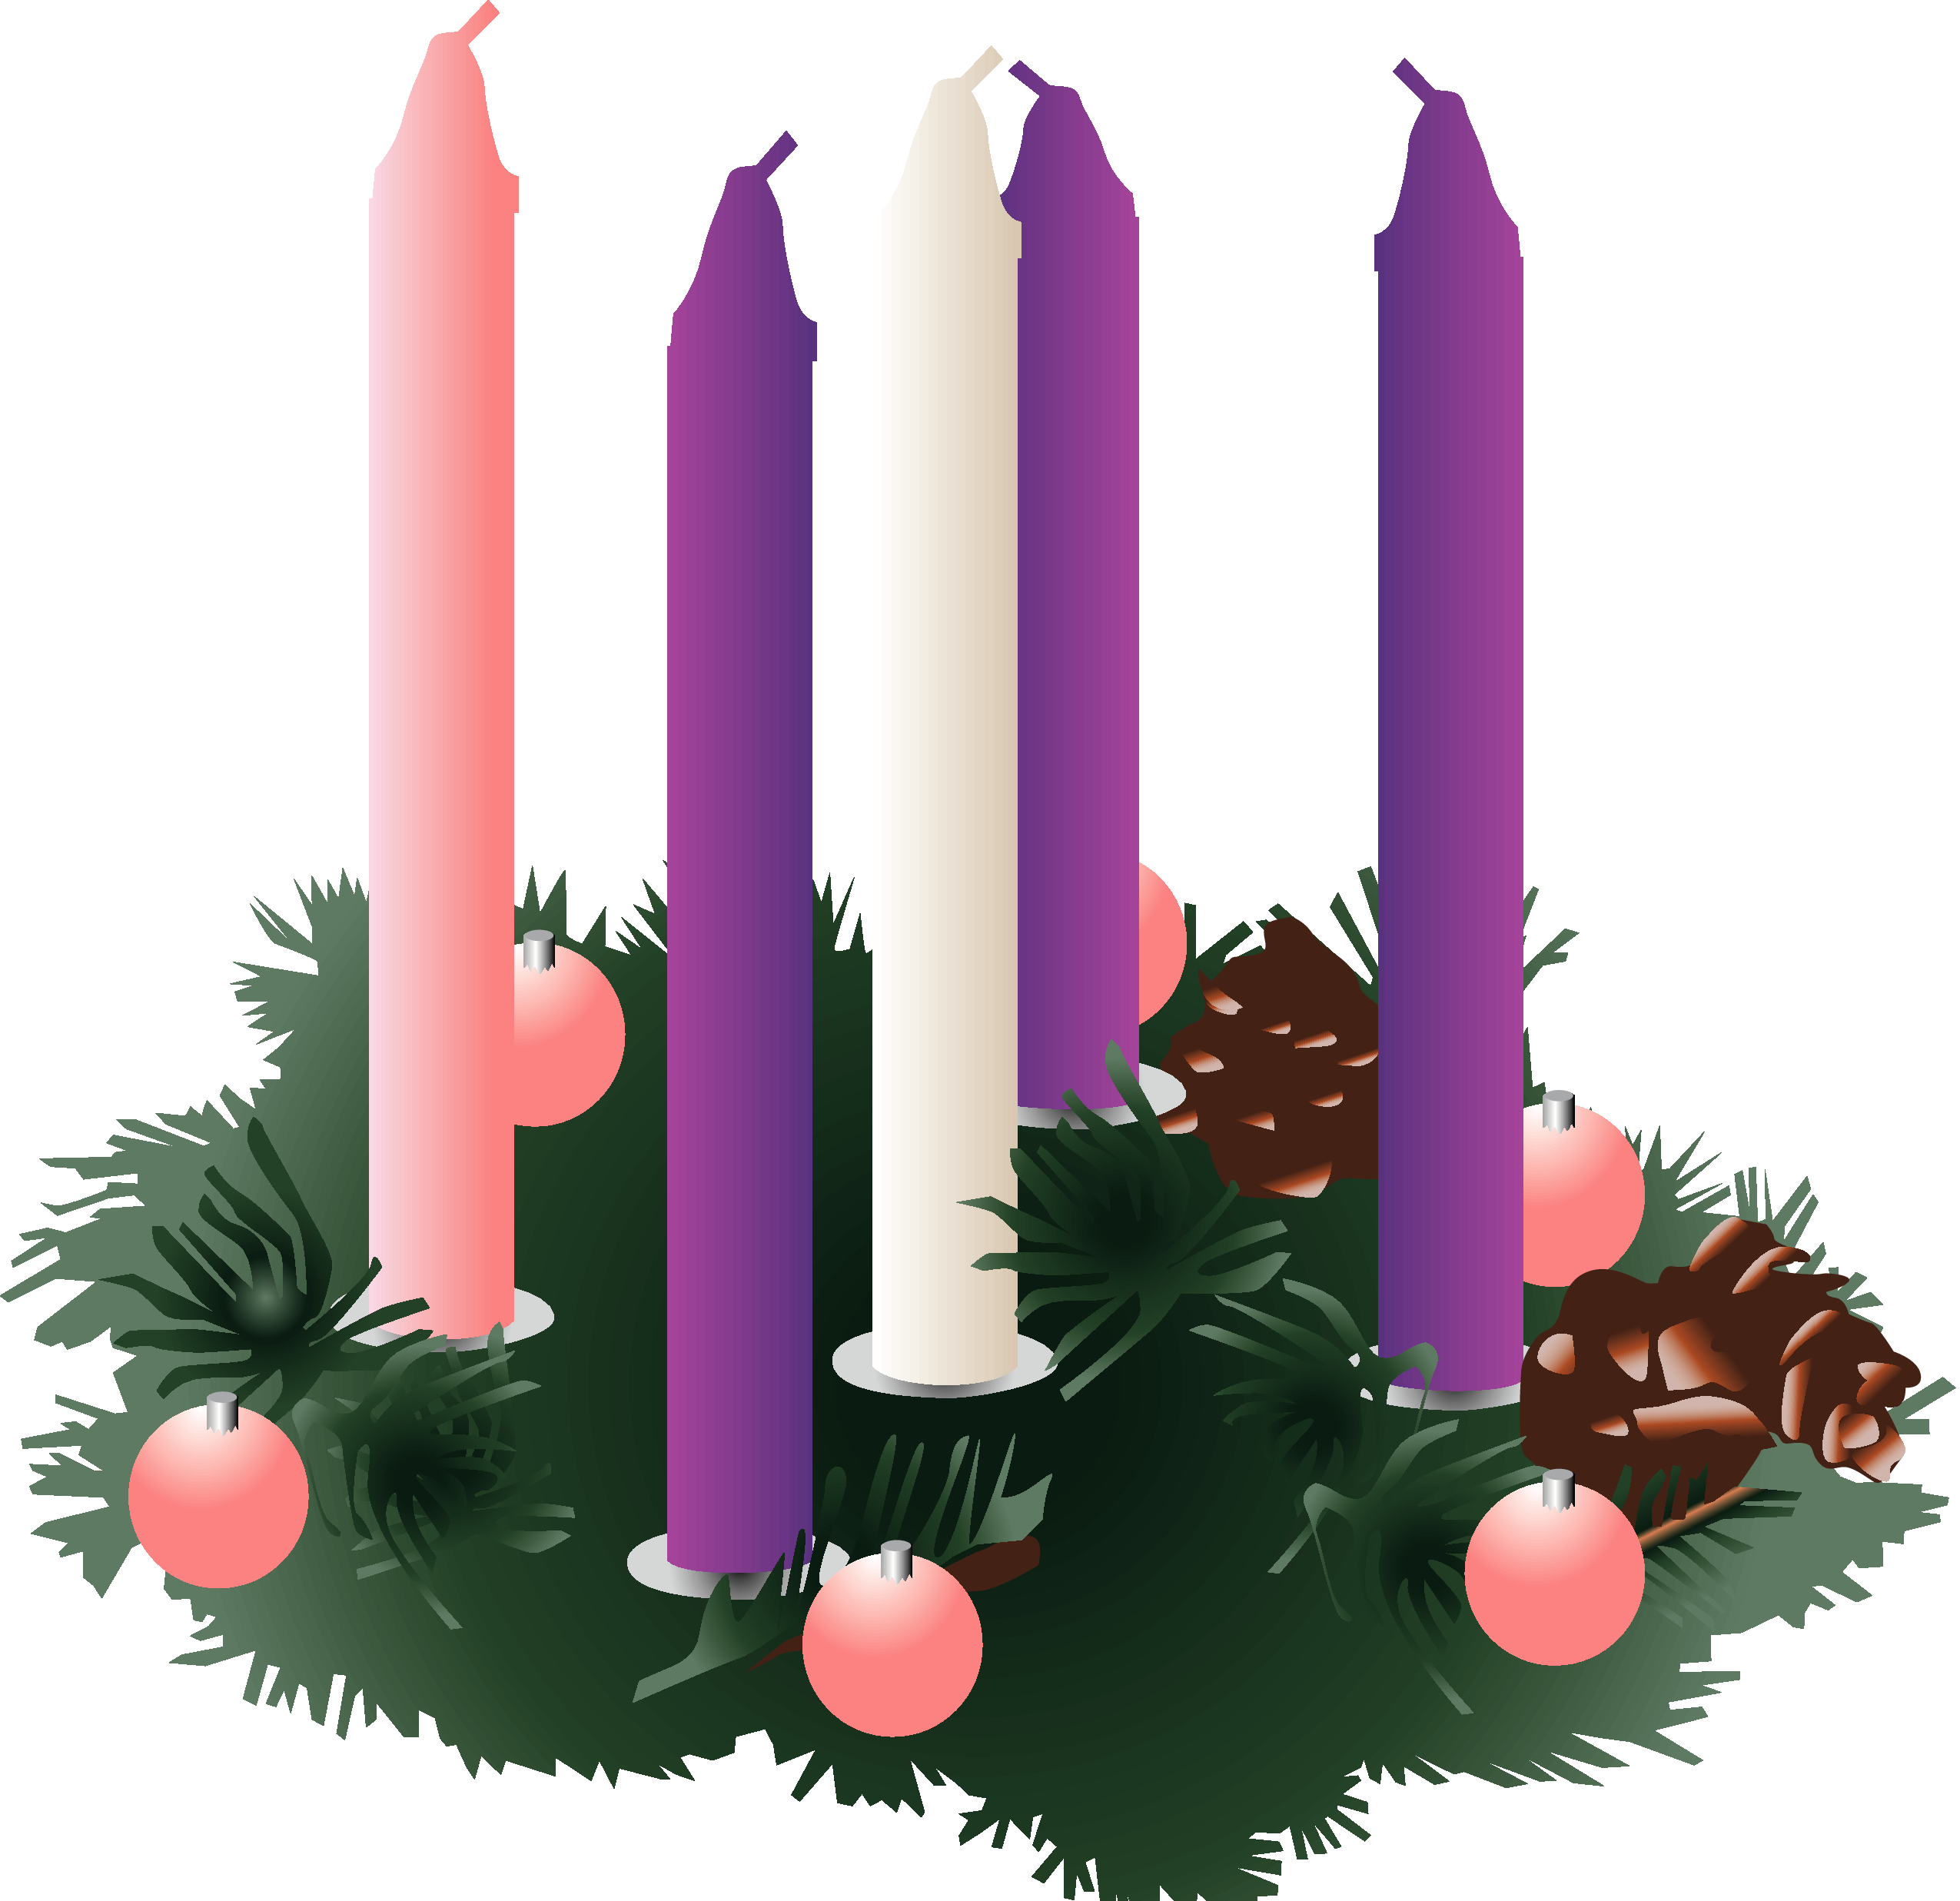 jpg freeuse stock Free clipart advent wreath. The park ridge community